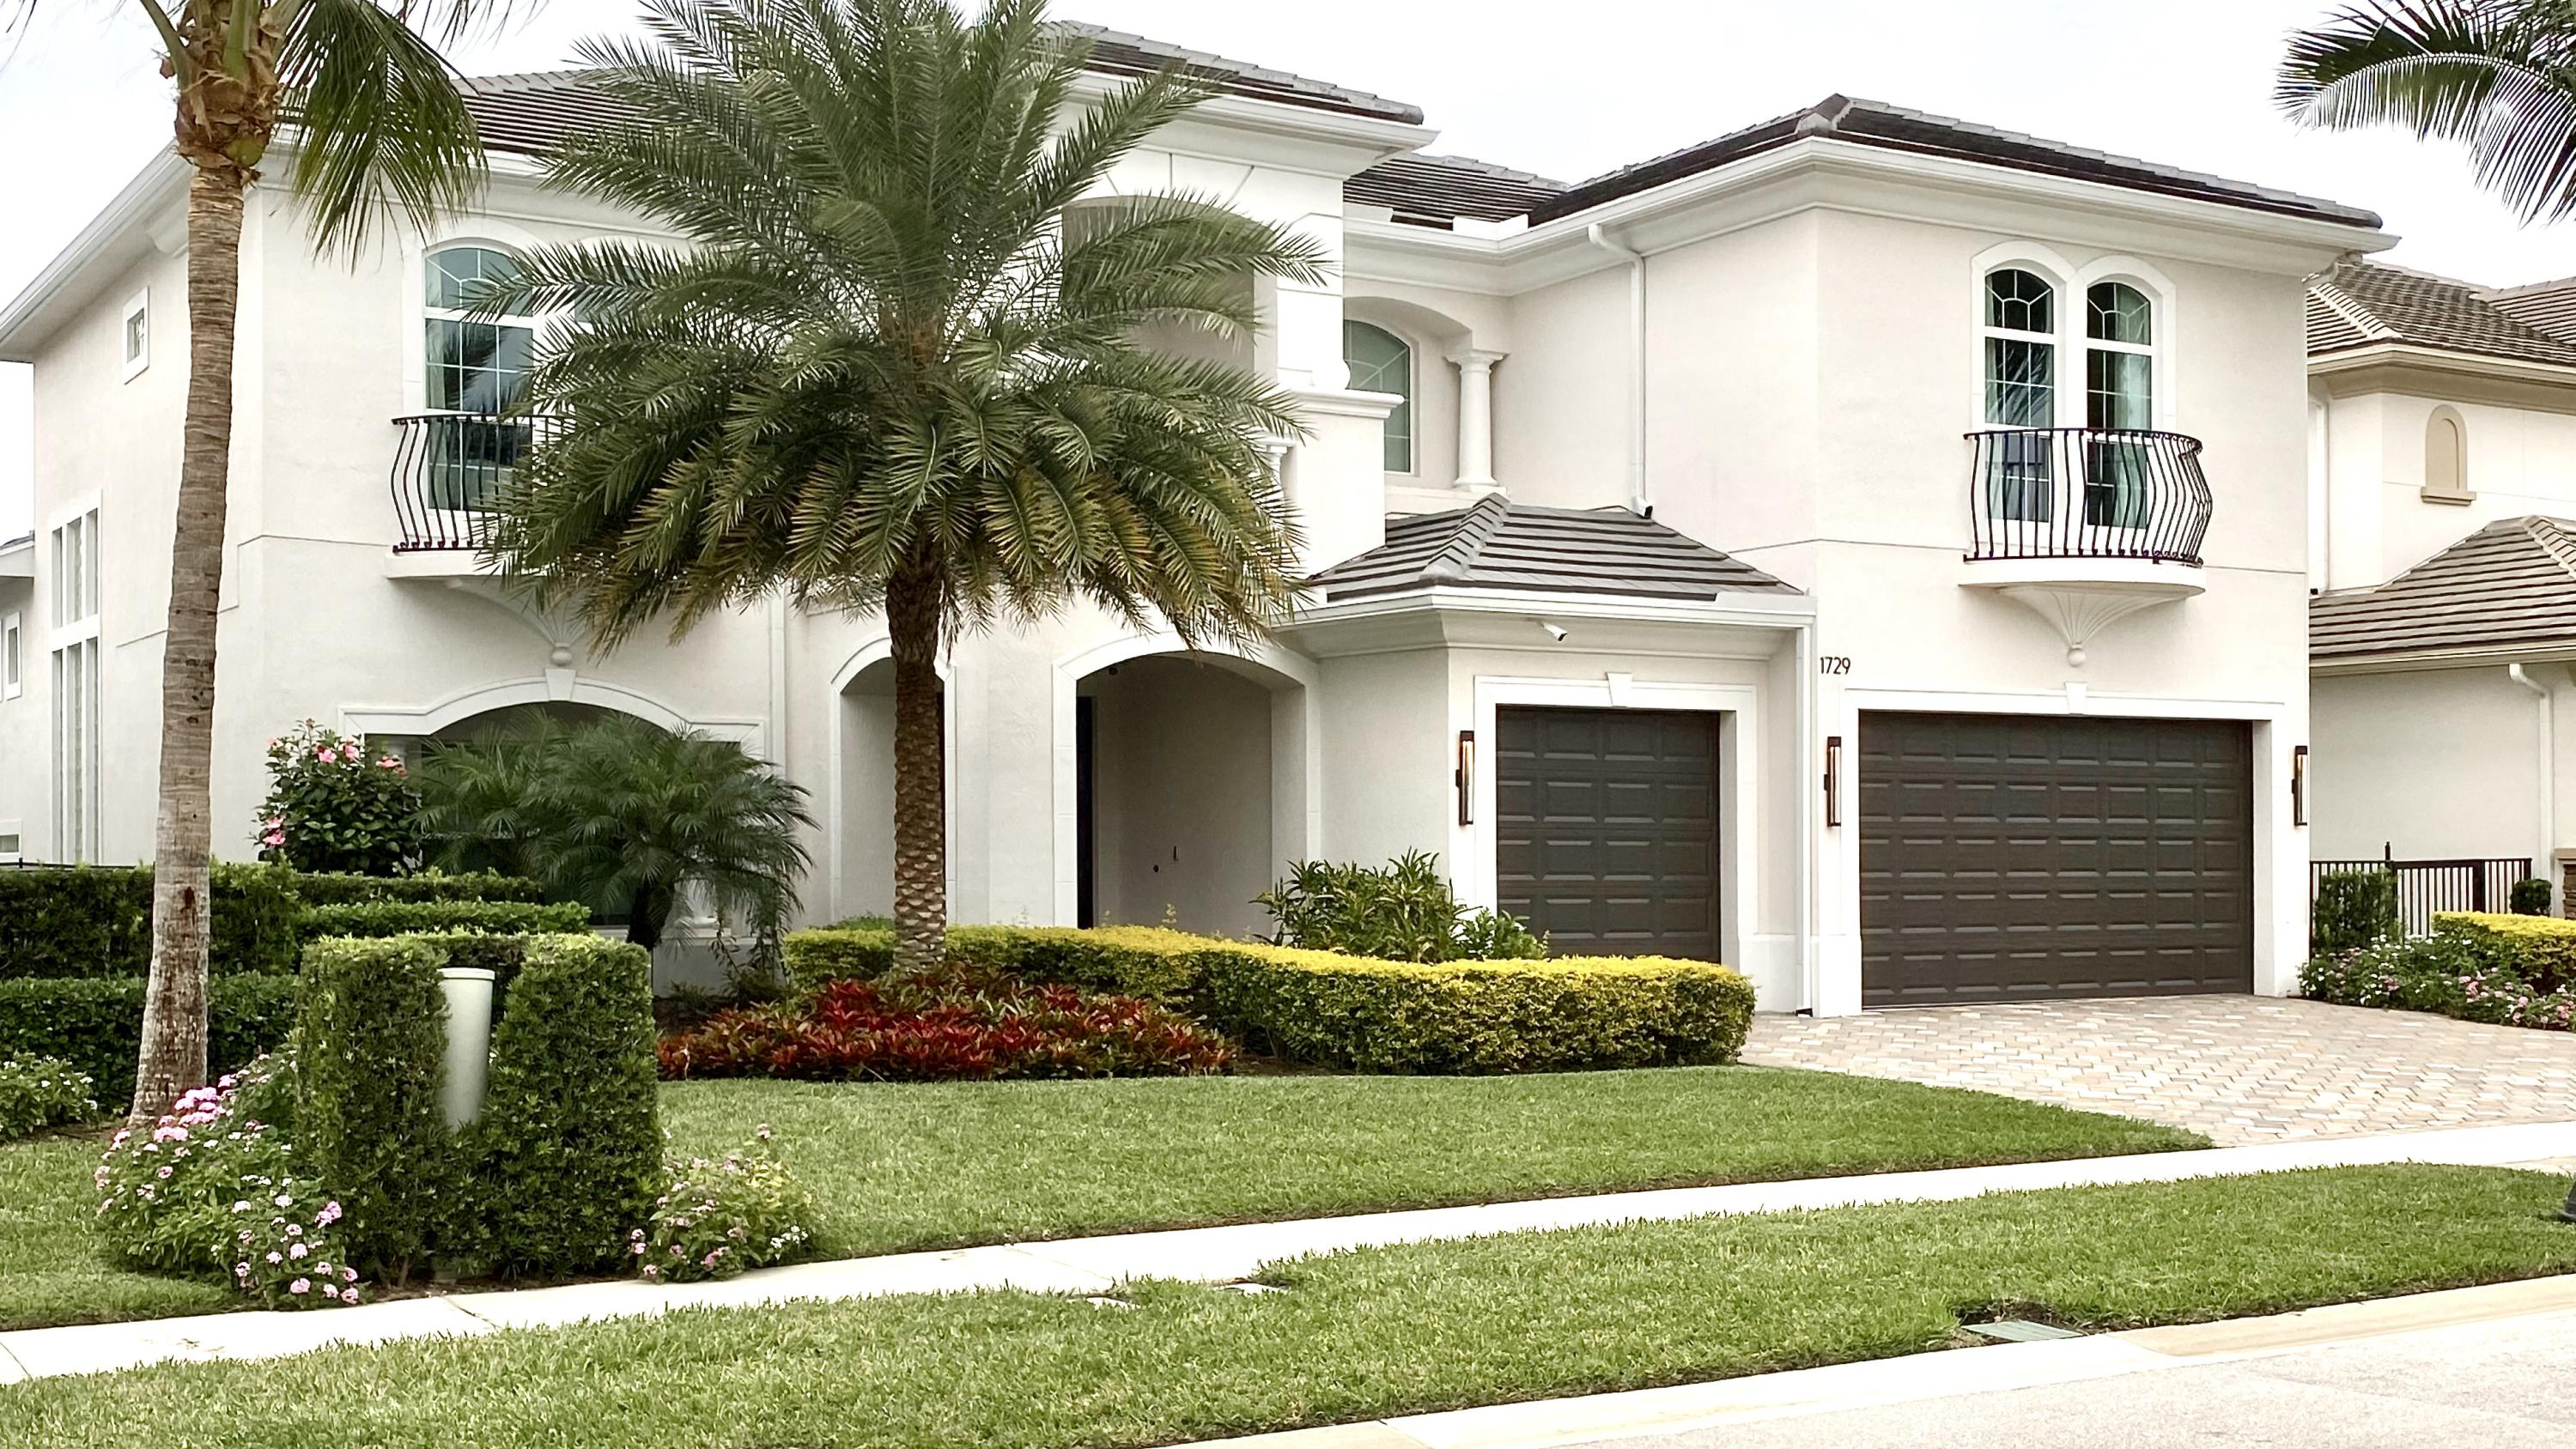 New Home for sale at 1729 Hemingway Drive in Juno Beach